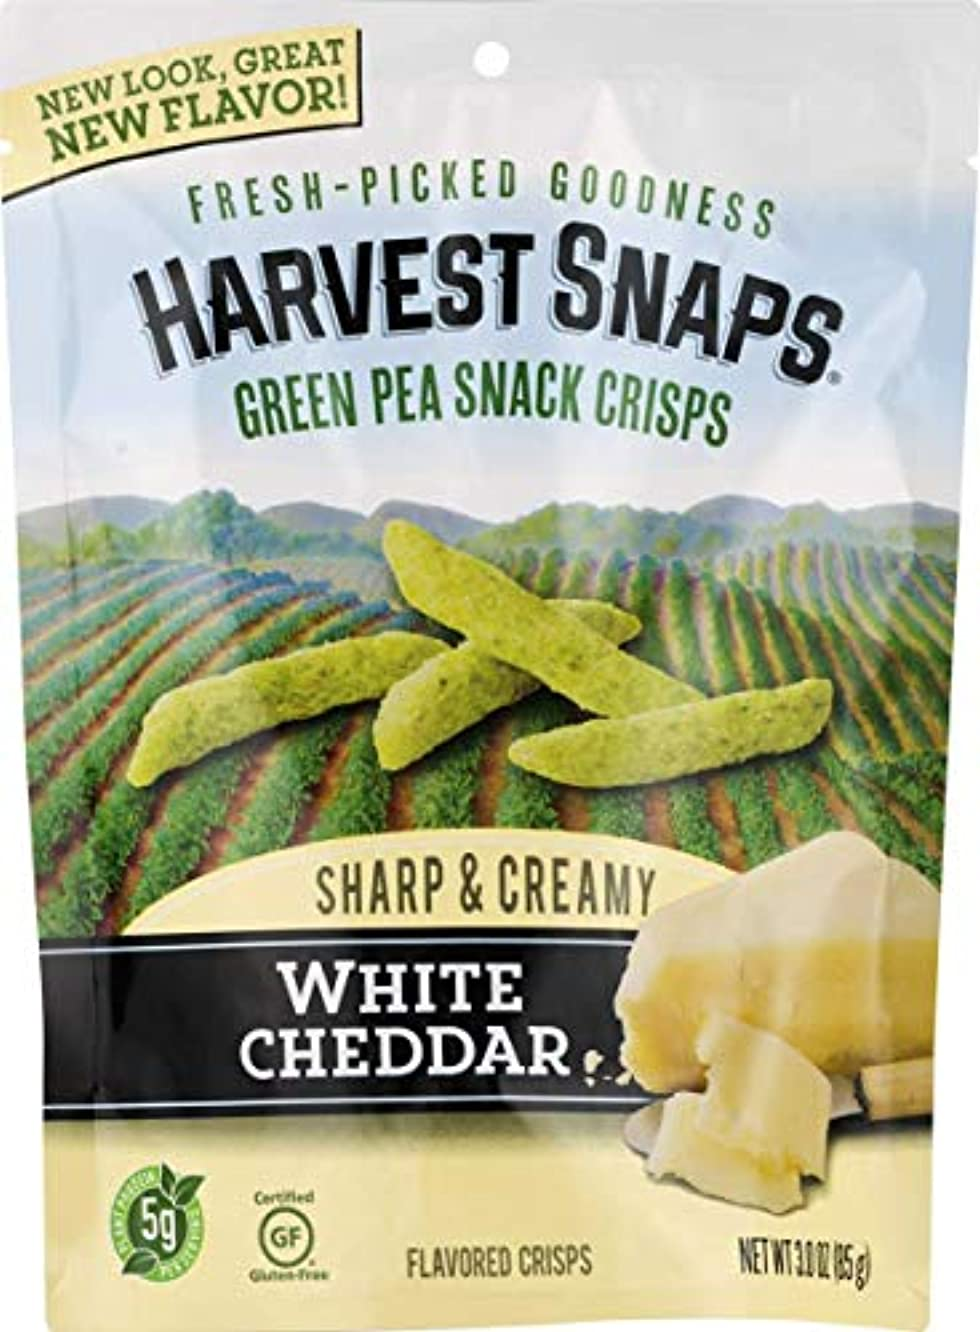 Harvest Snaps Green Pea Snack Crisps, White Cheddar, Deliciously baked and crunchy veggie snacks with plant protein and fiber, 3-Ounce Bag (Pack of 12)